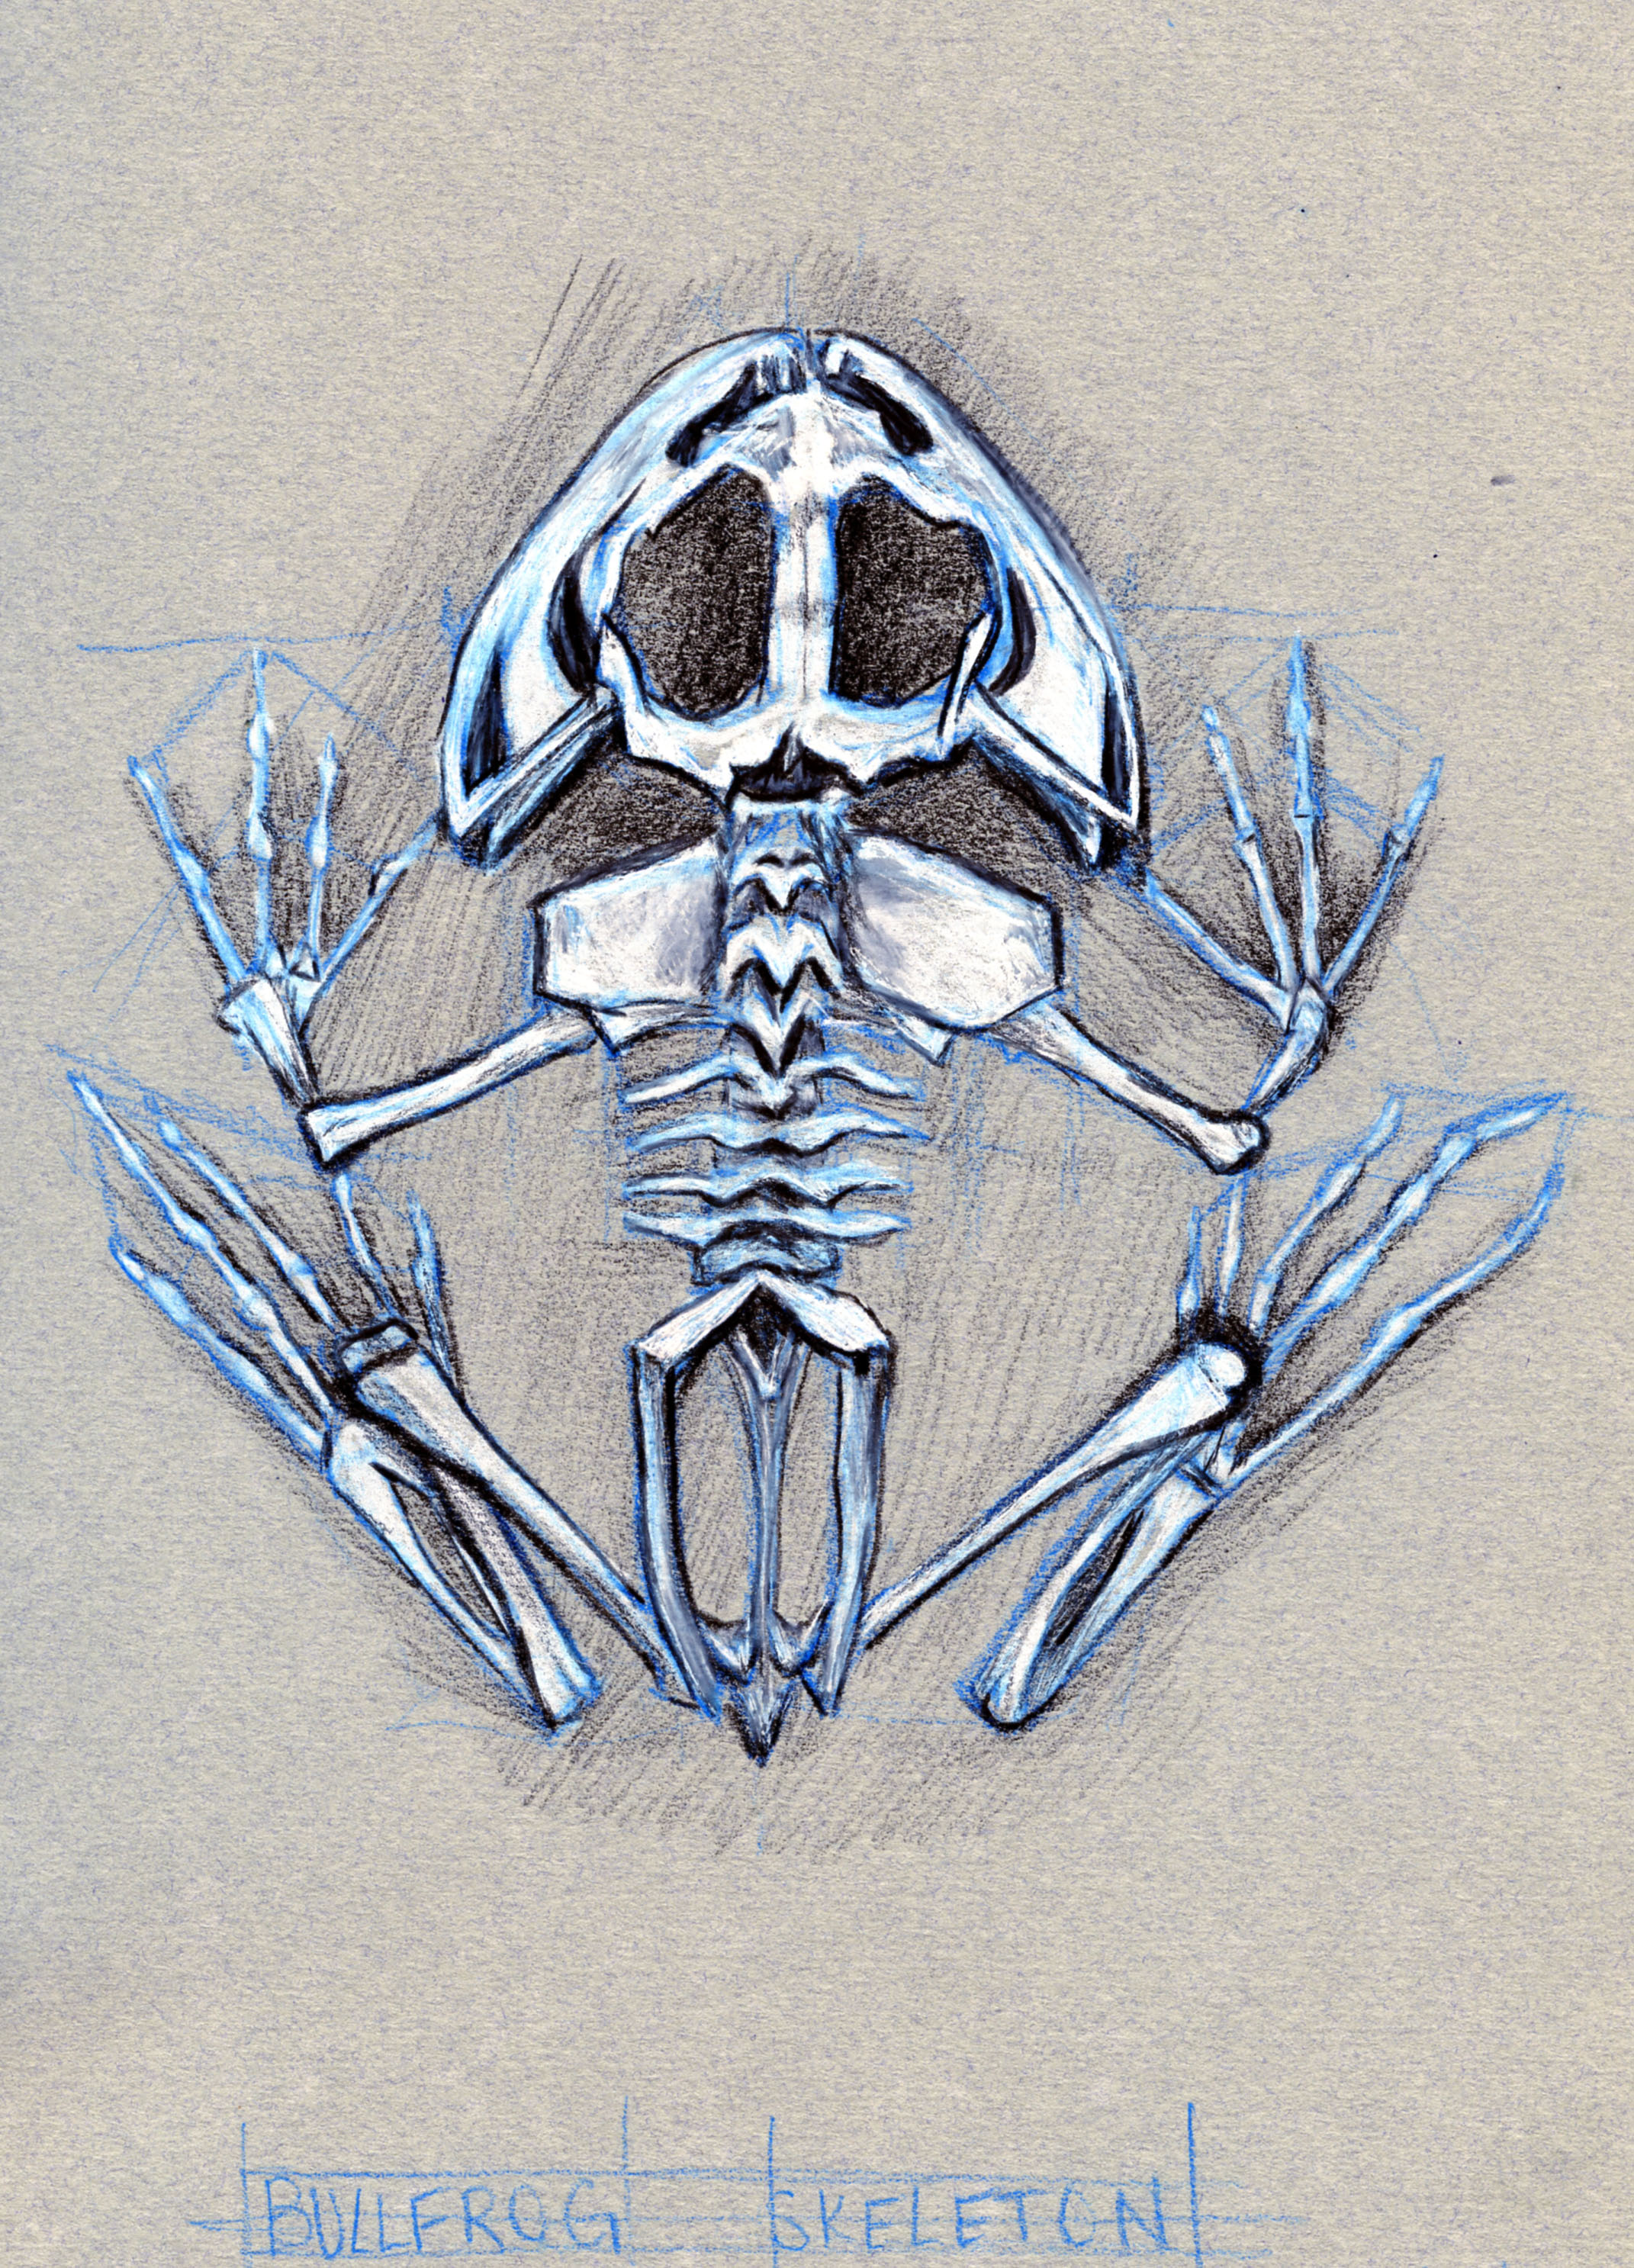 Bullfrog Skeleton